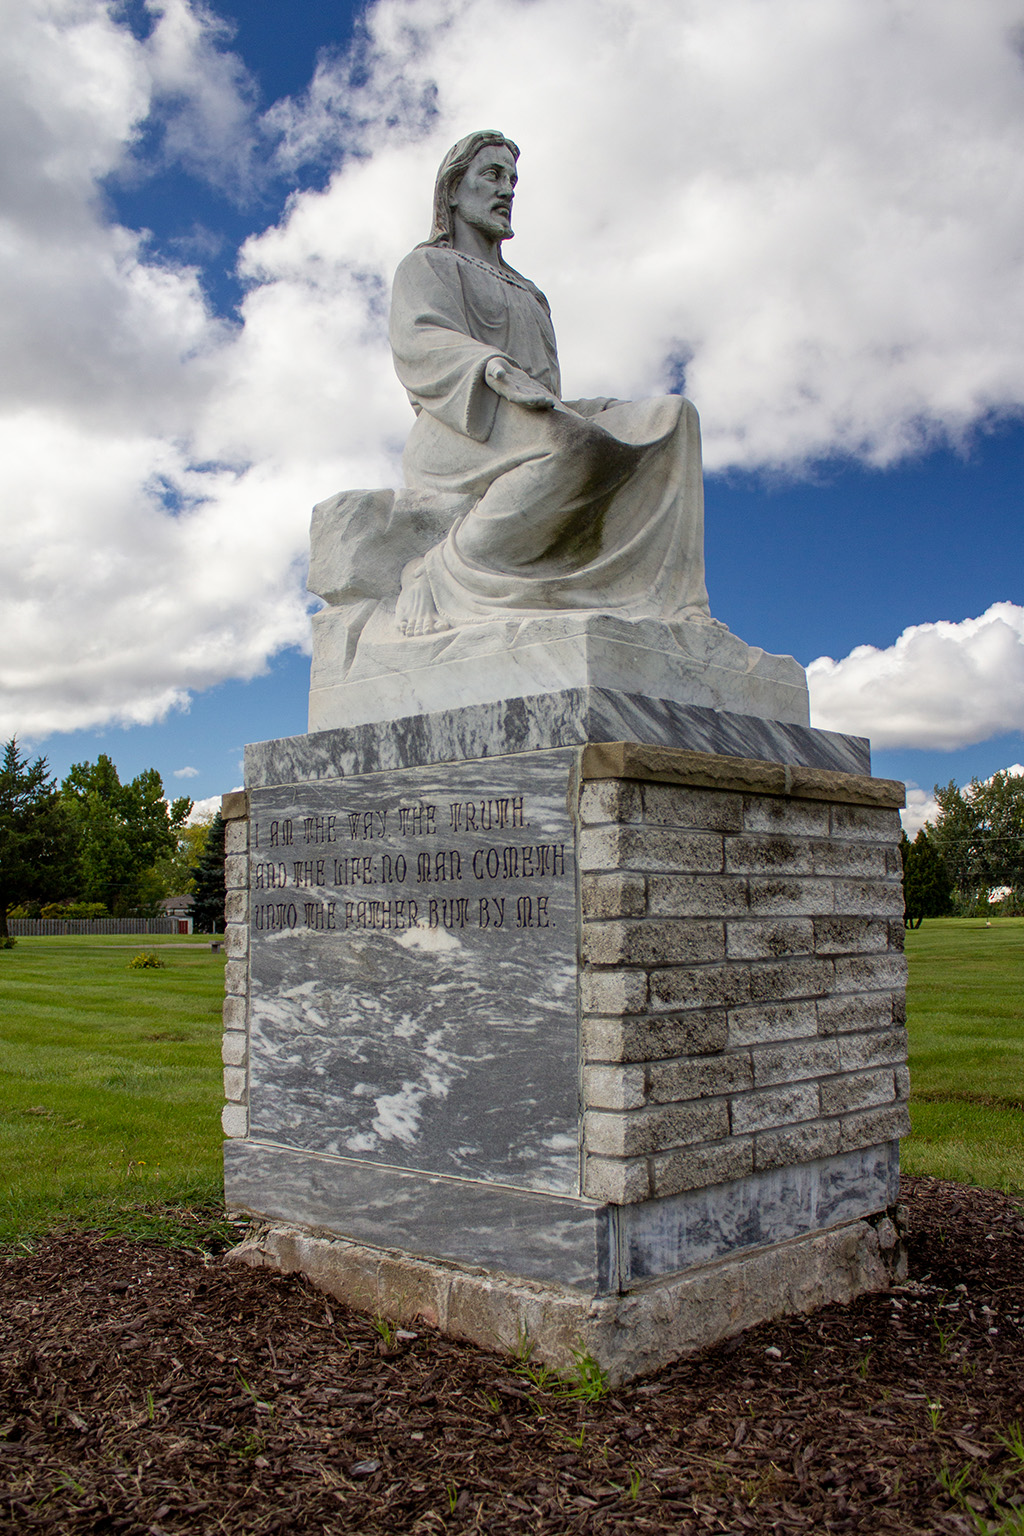 statue of Christ on grounds of East cemetery